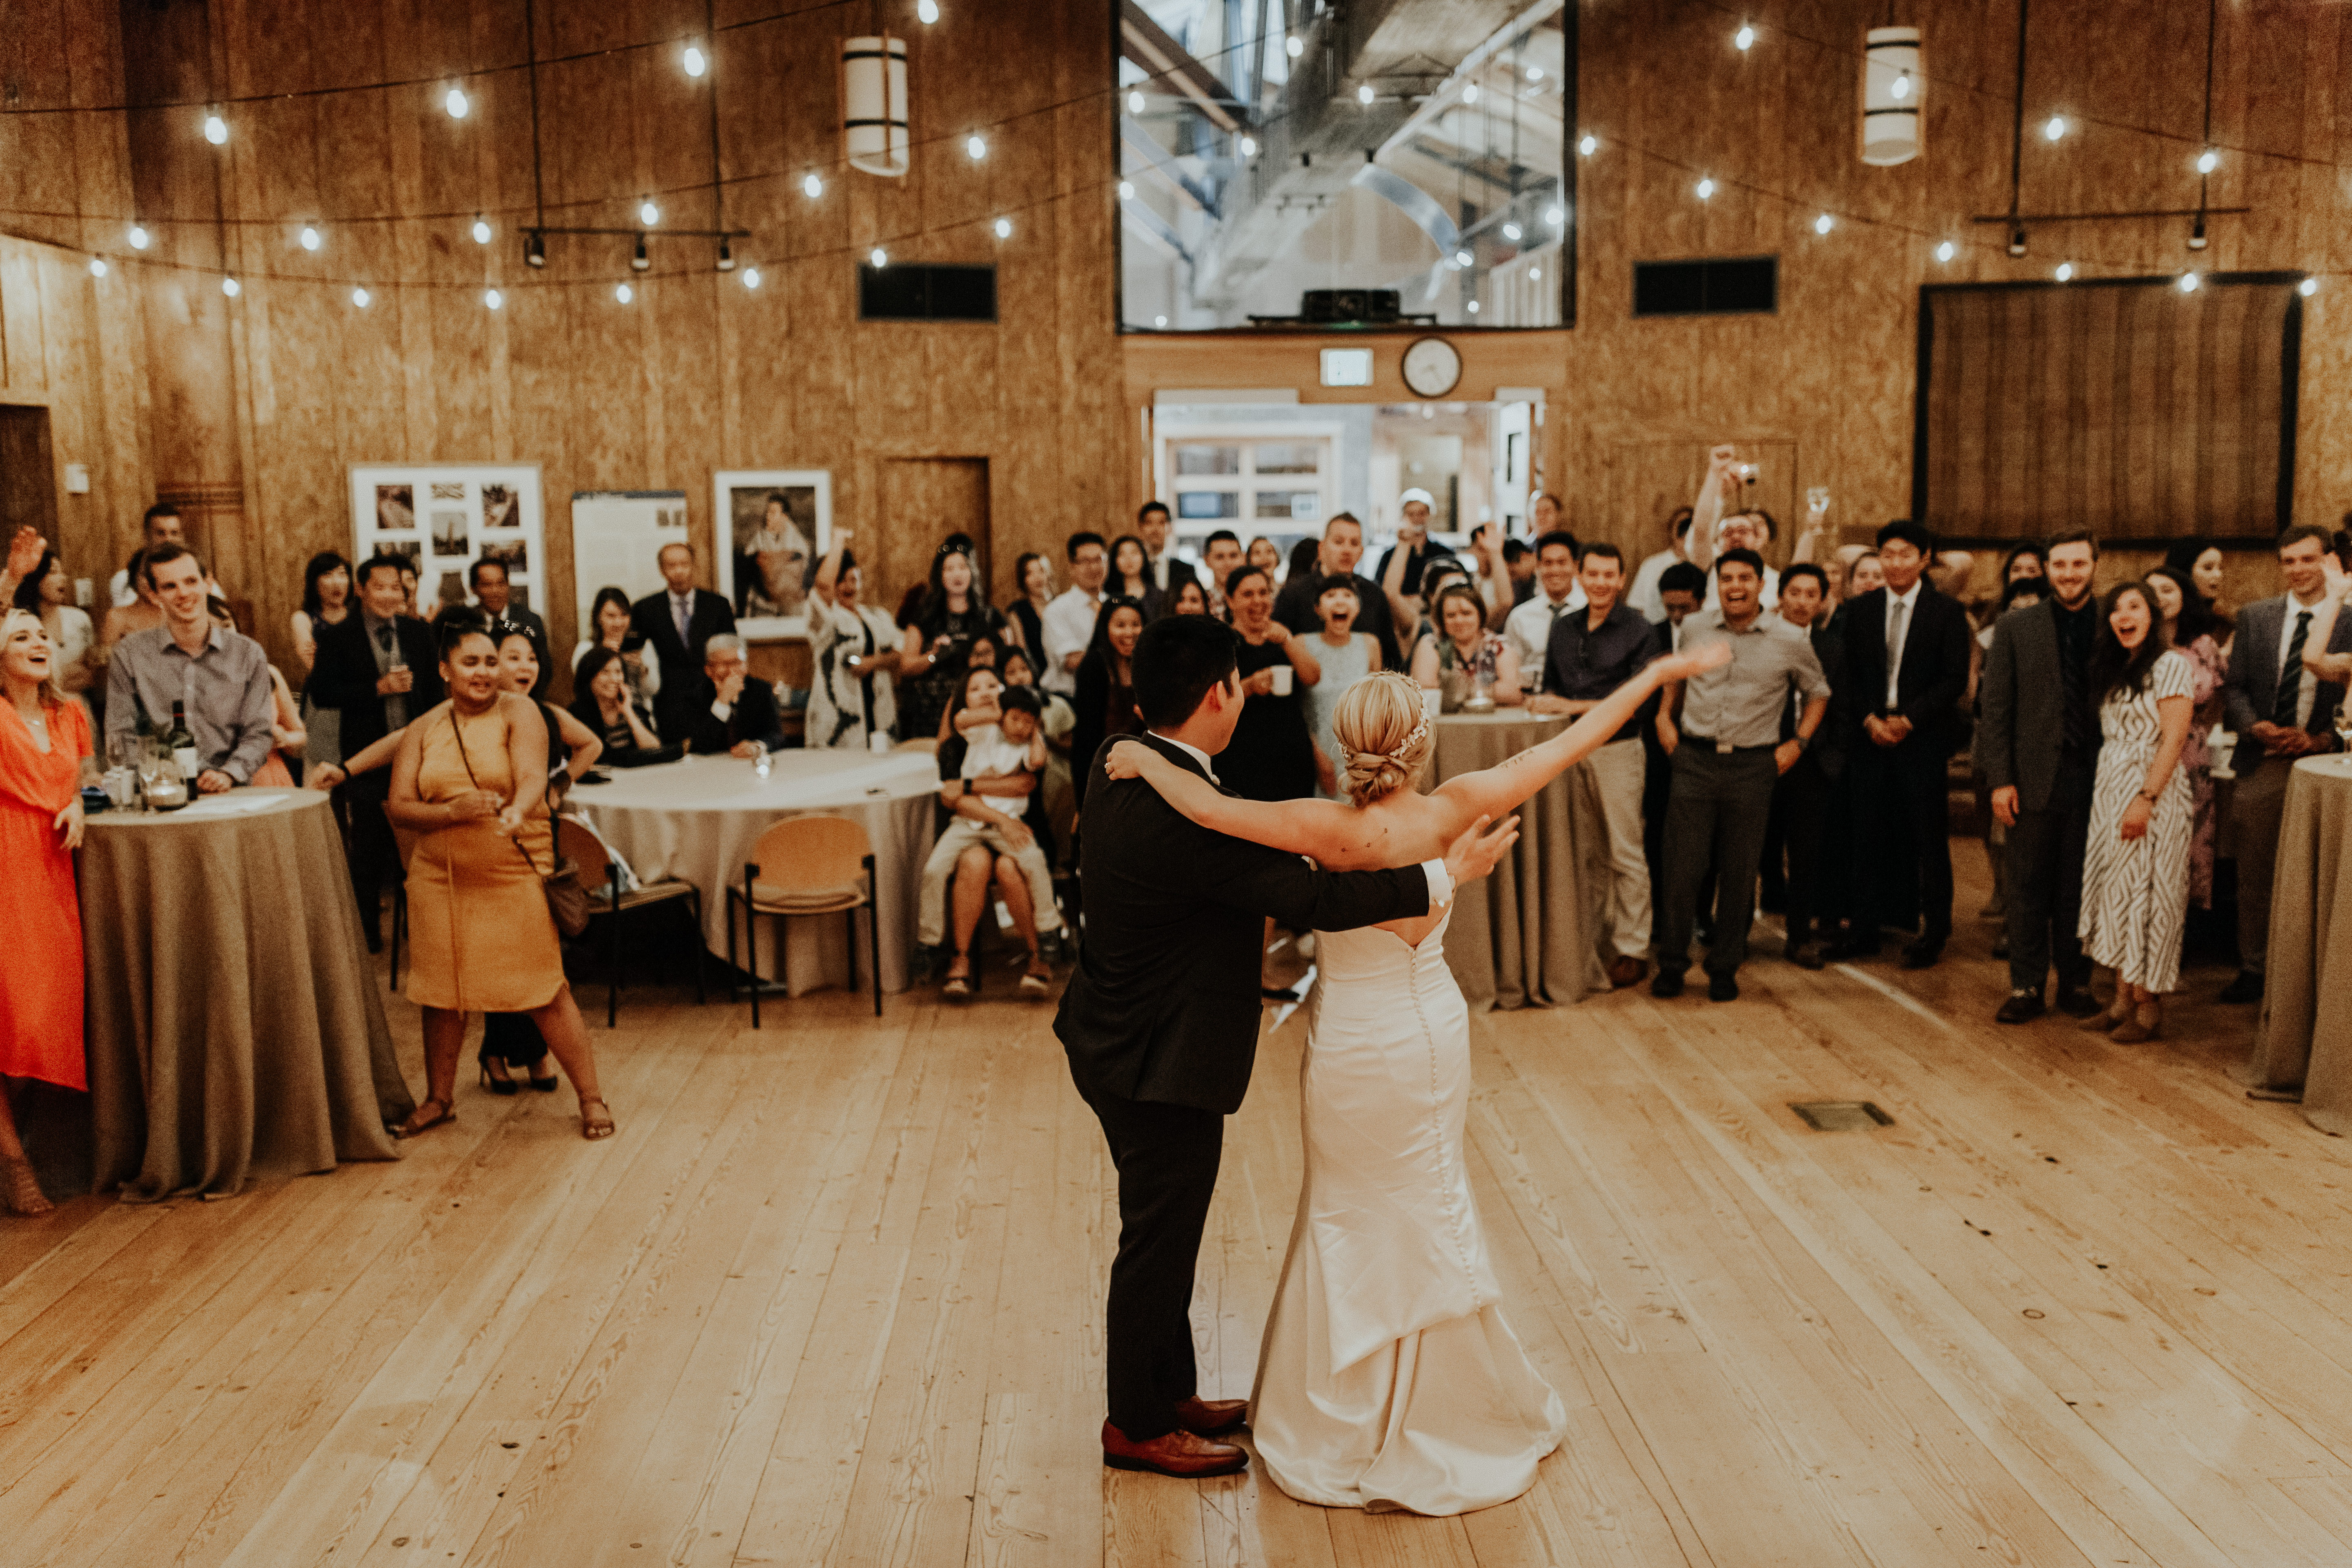 [Image description: a wedding couple faces away from the camera with their arms outstretched in the Great Hall. Their wedding guests are in front of them, clapping and smiling.]